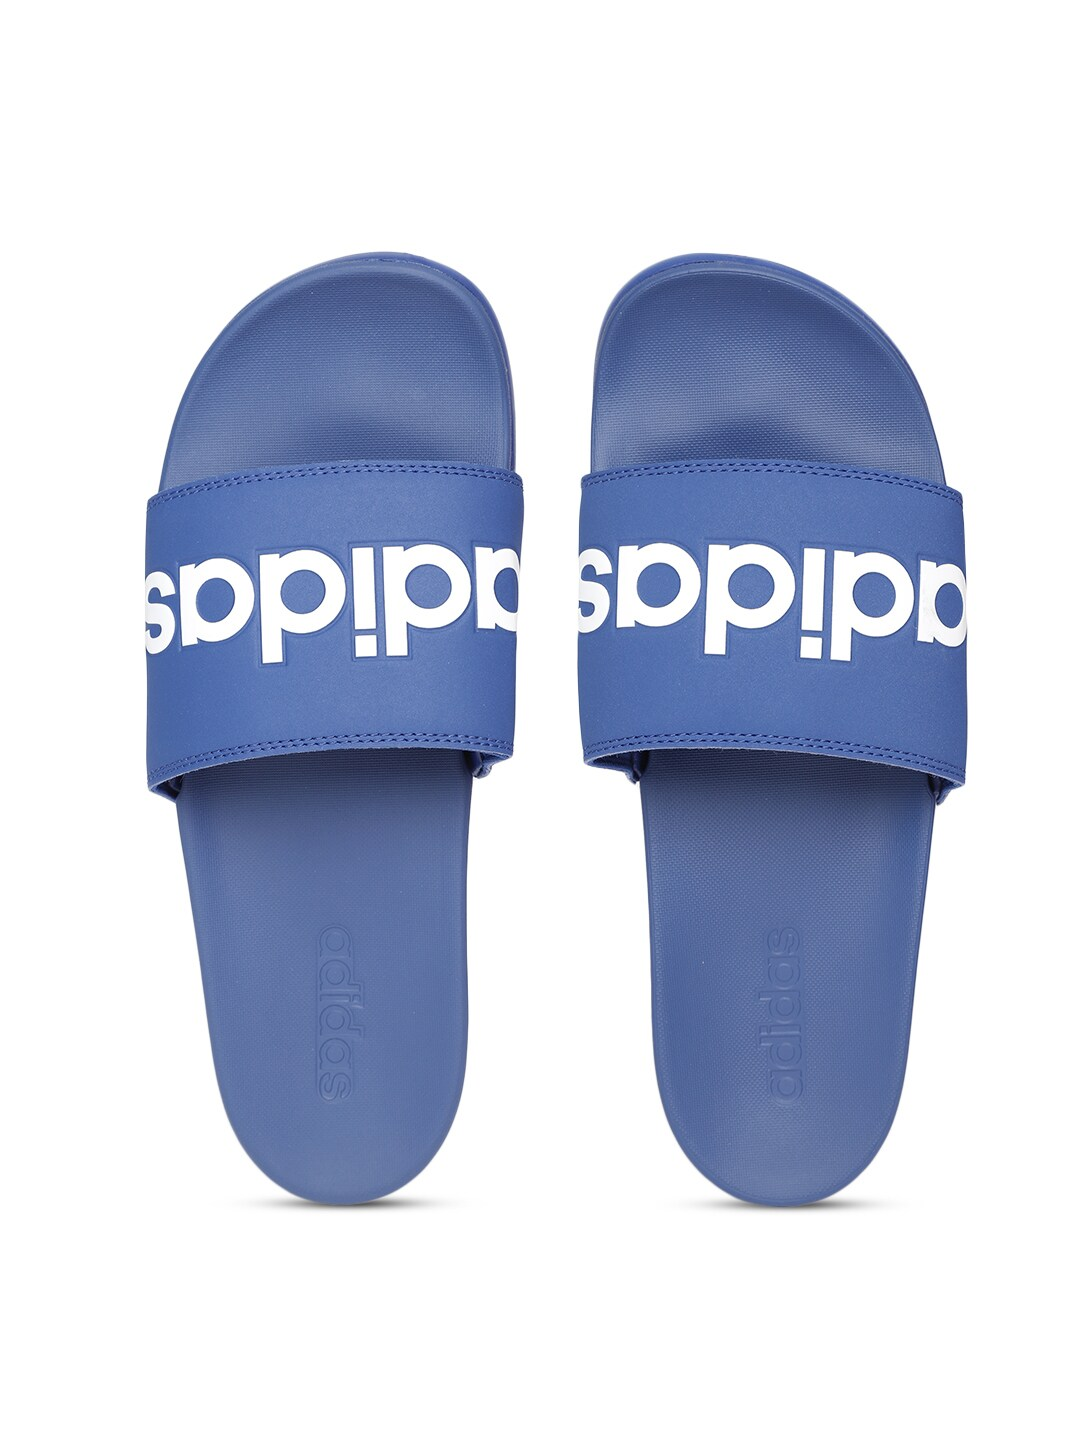 cfd312bd368af7 Adidas Slippers - Buy Adidas Slipper   Flip Flops Online India